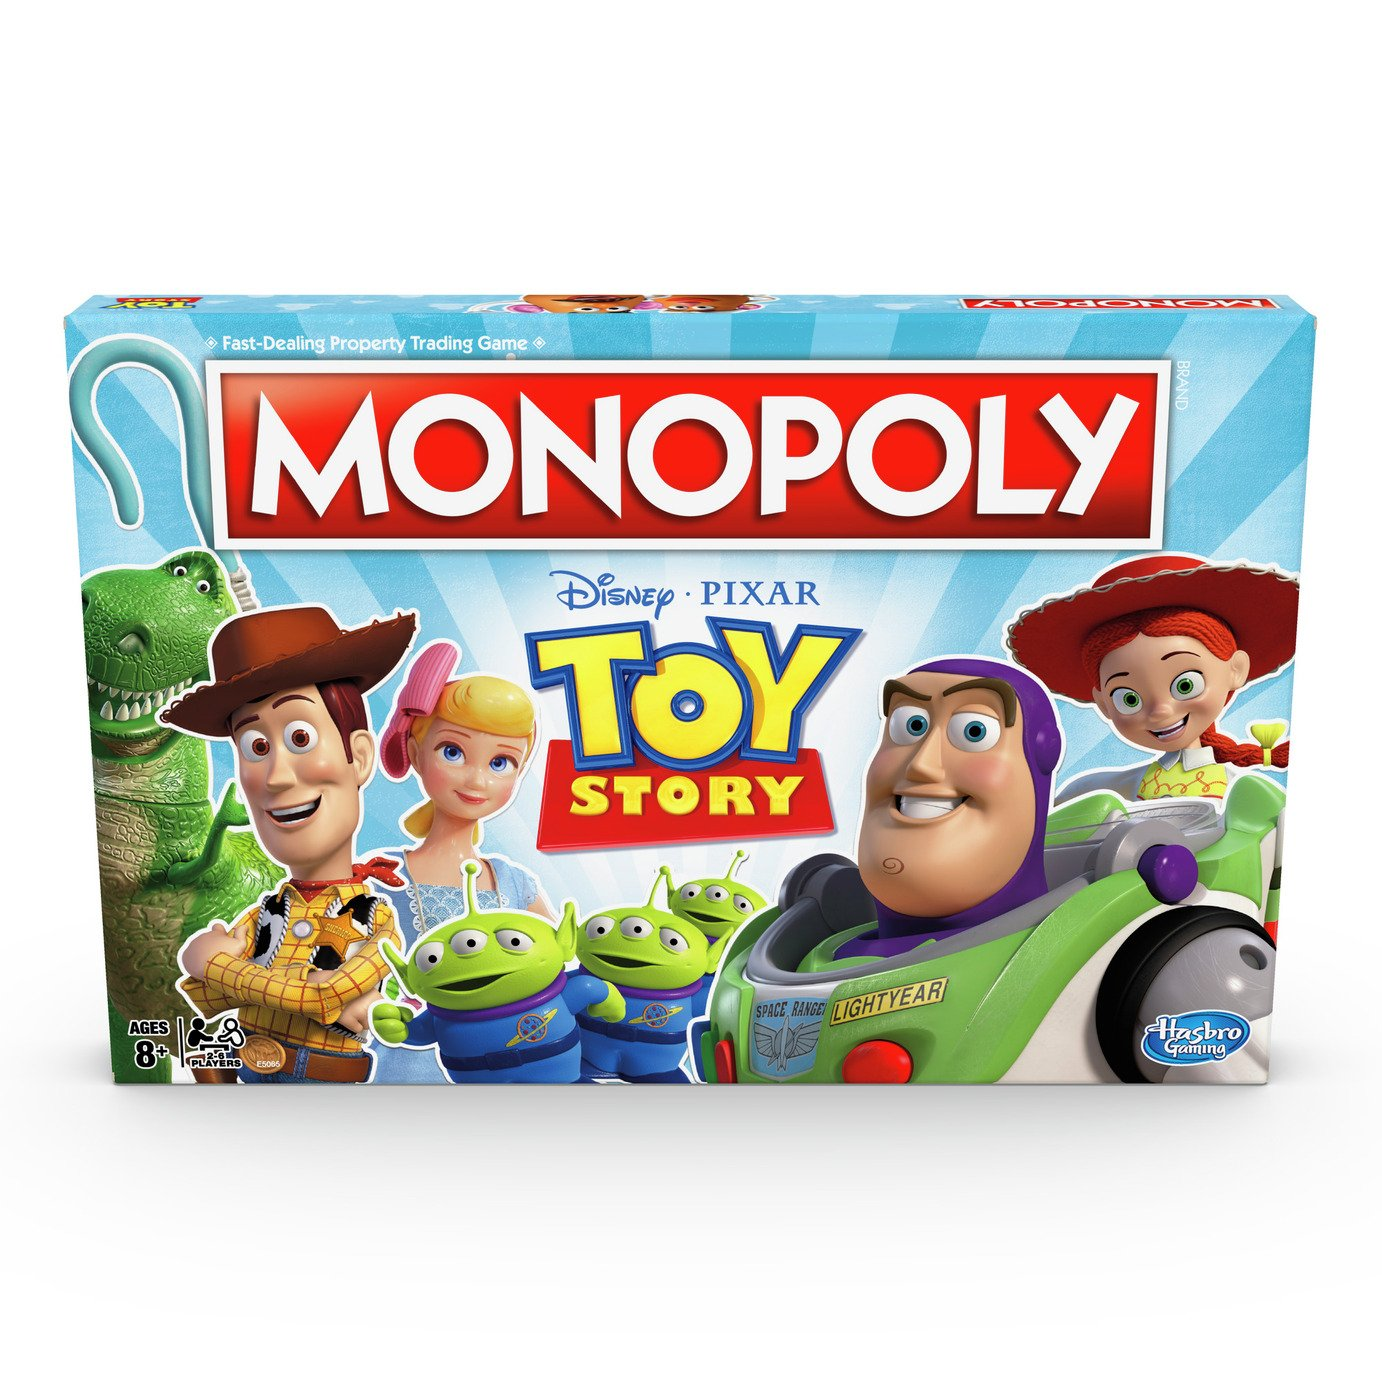 Monopoly Toy Story from Hasbro Gaming